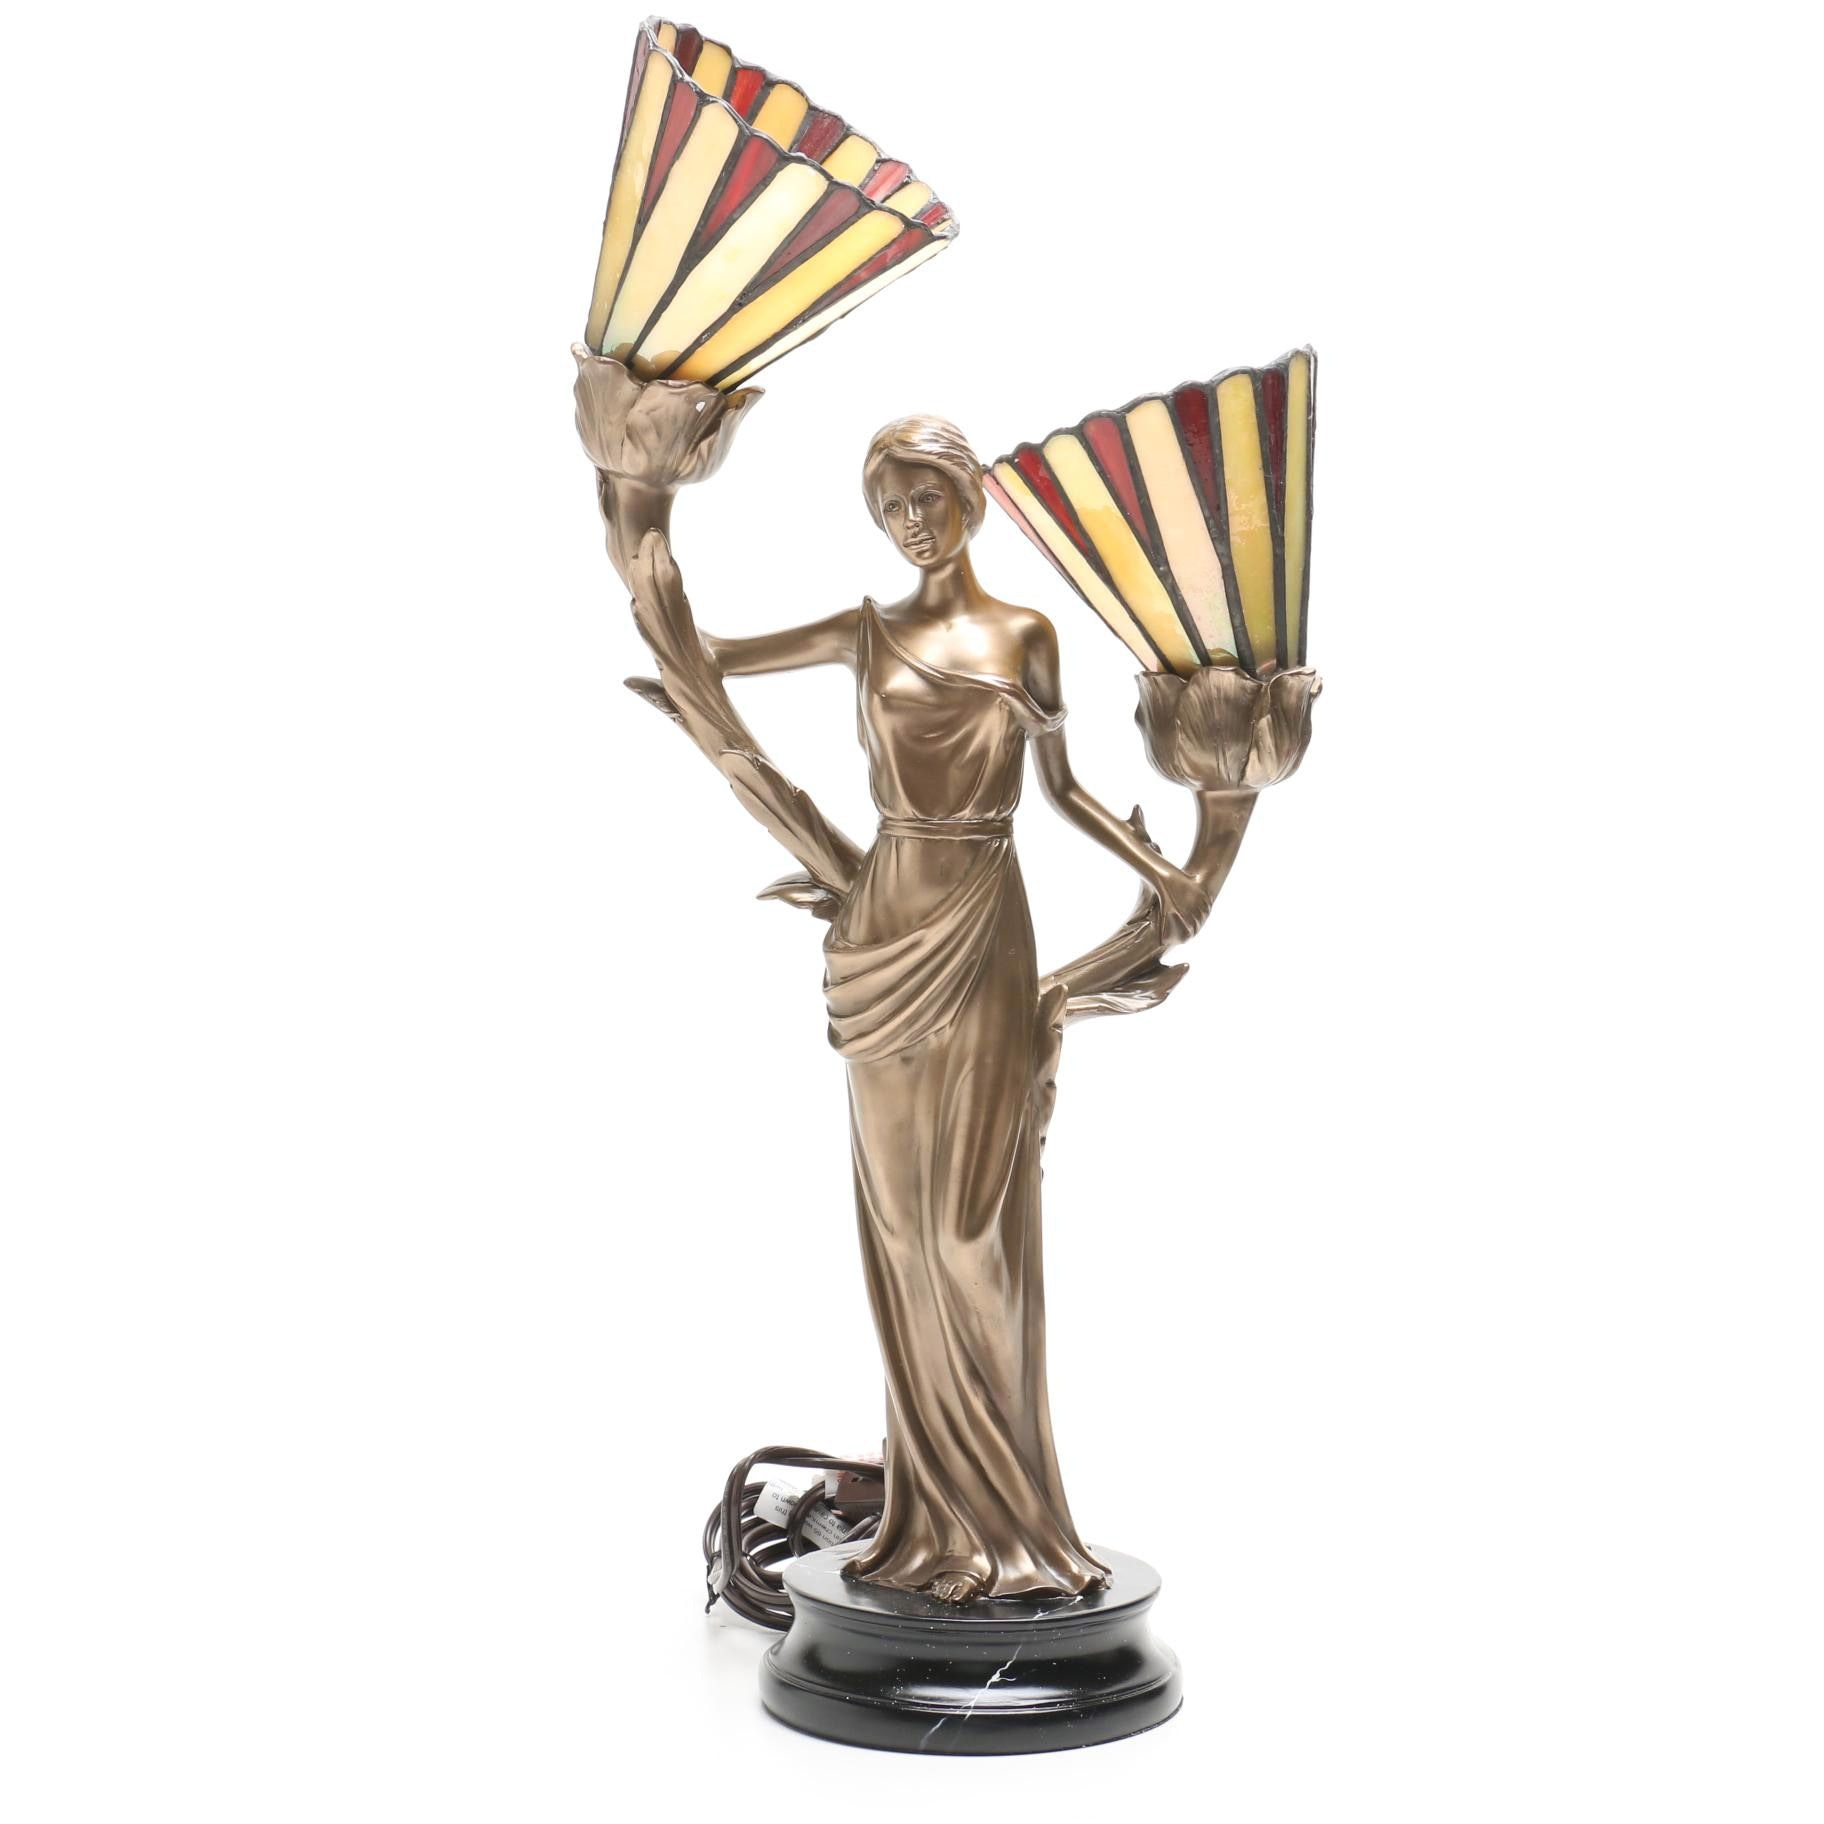 Art Nouveau Figural Table Lamp with Stained Glass Shades